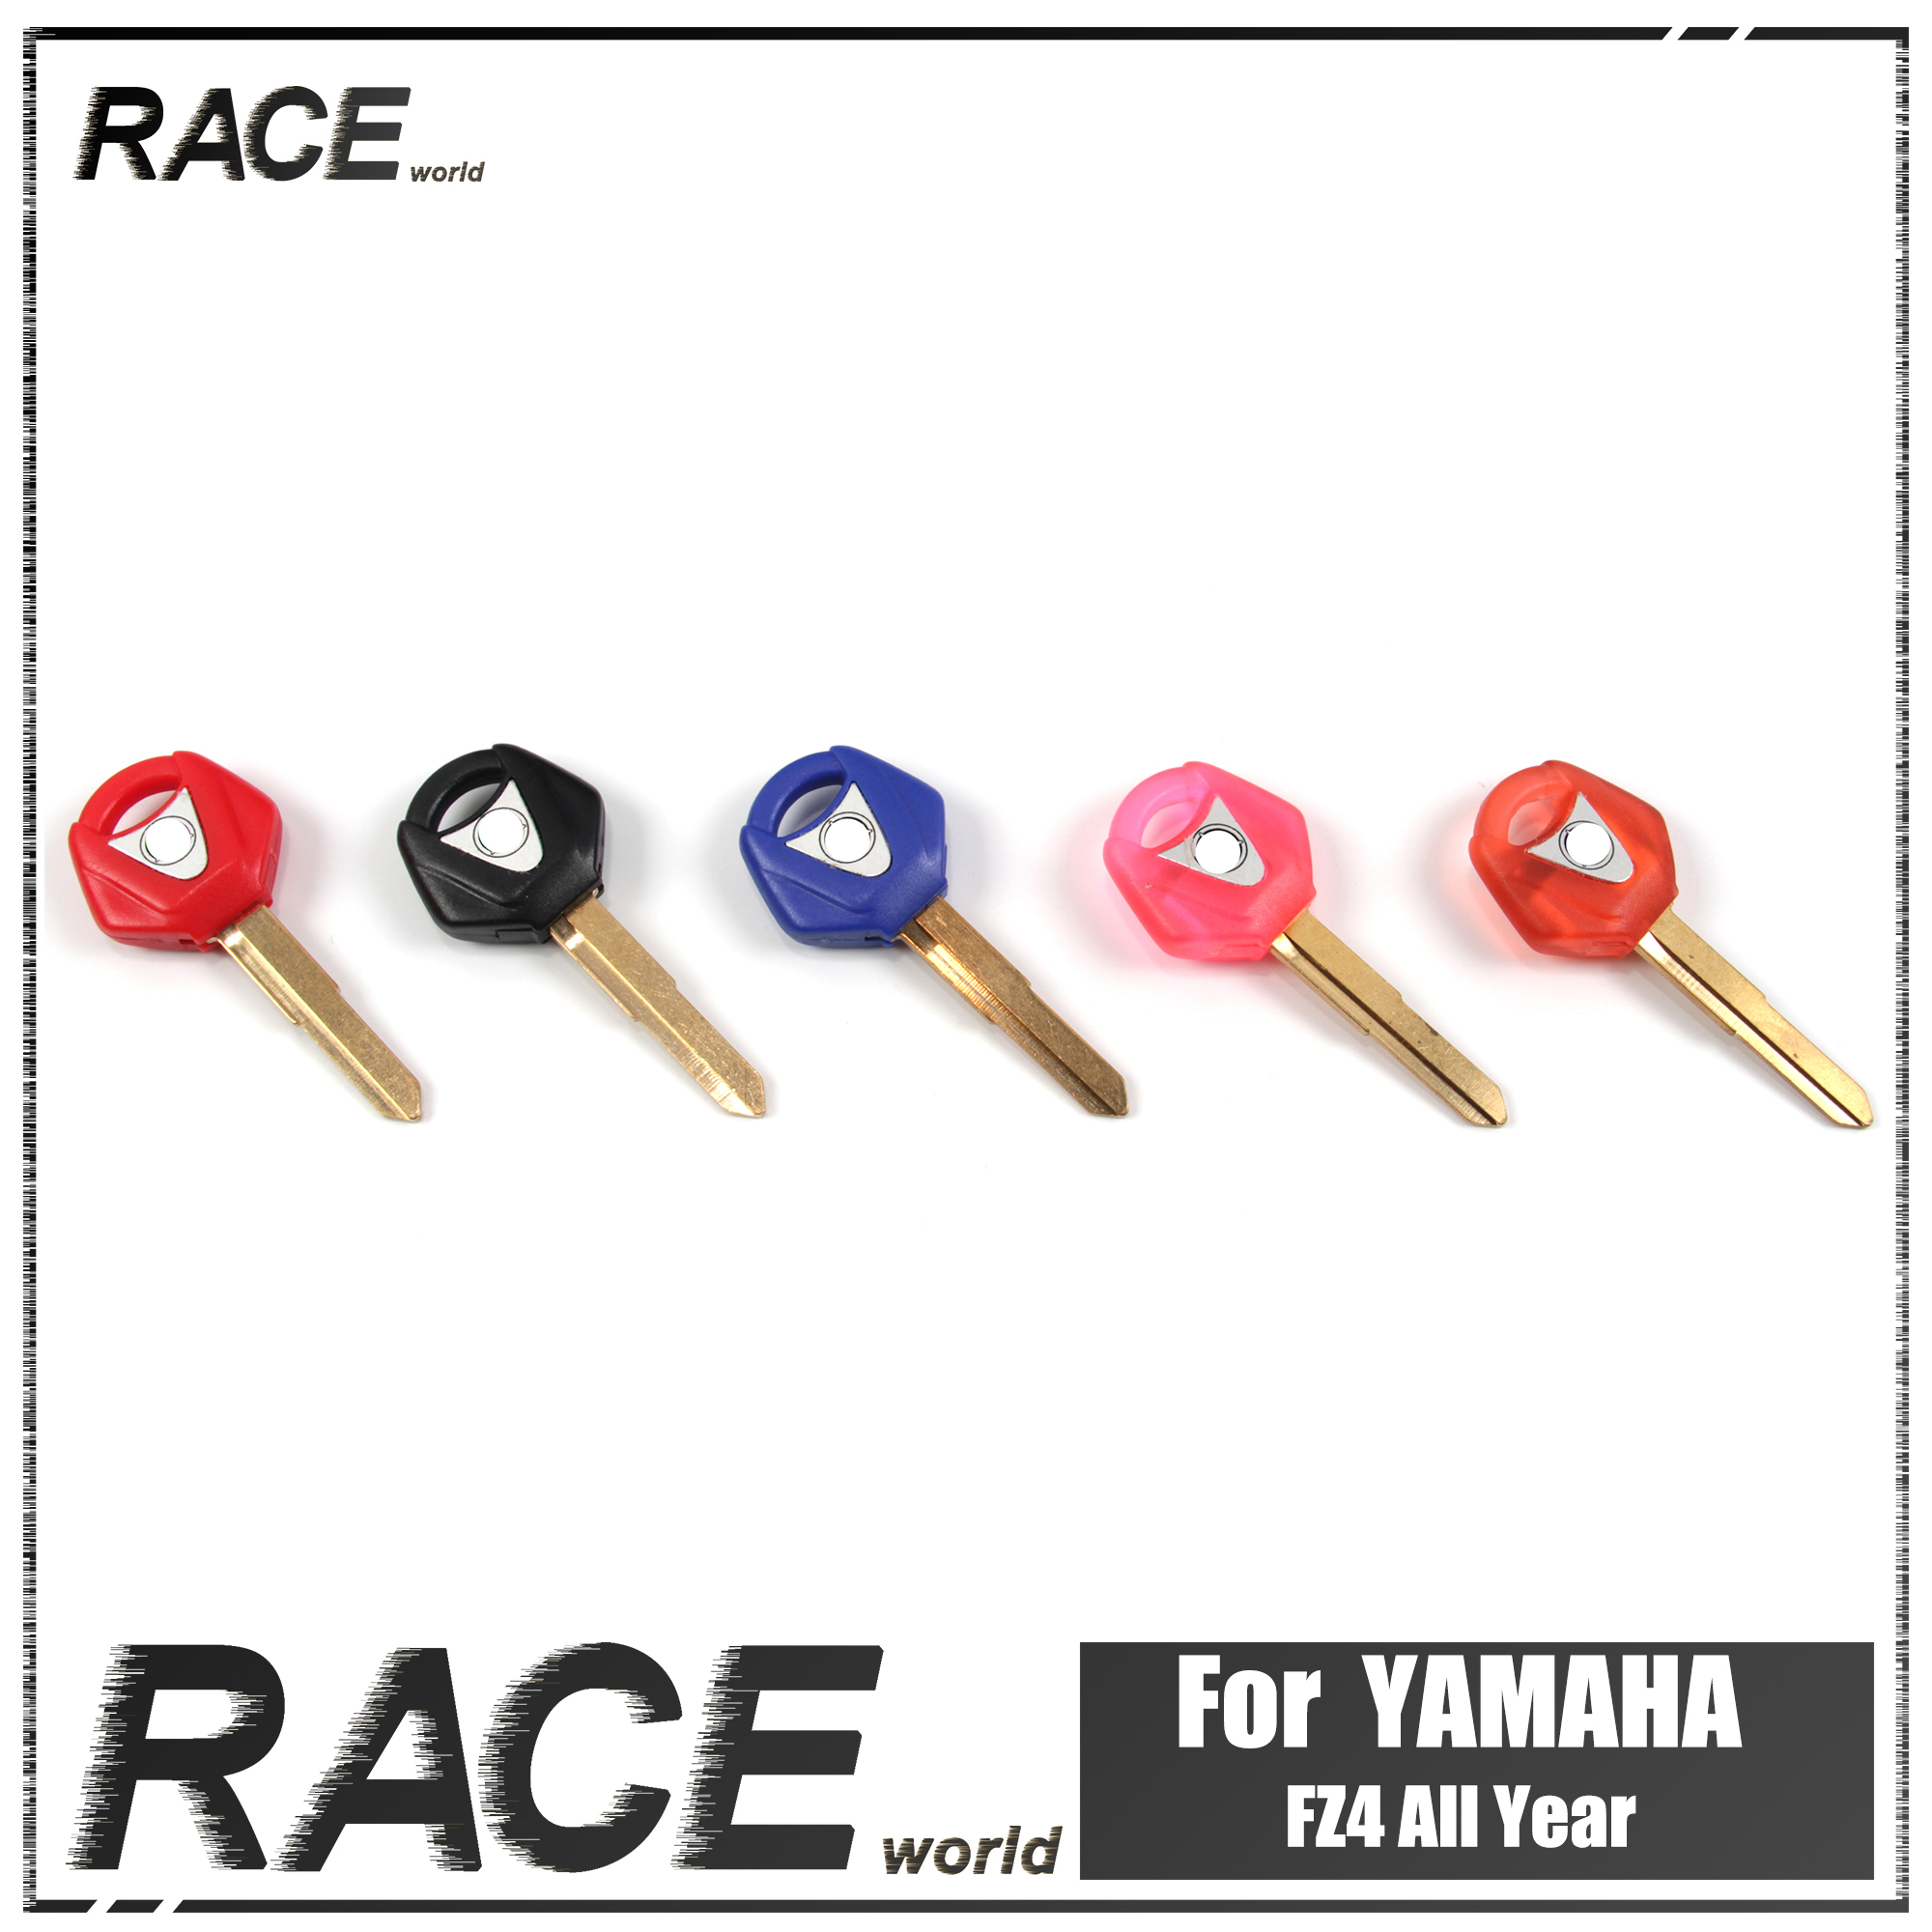 Motorcycle Uncut Blade Blank Key Embryo For YAMAHA YZF R1 R6 YZF-R1 YZF-R6 FZ1 FZ1S FZ1N FZ1000 Replacement Accessories 2003